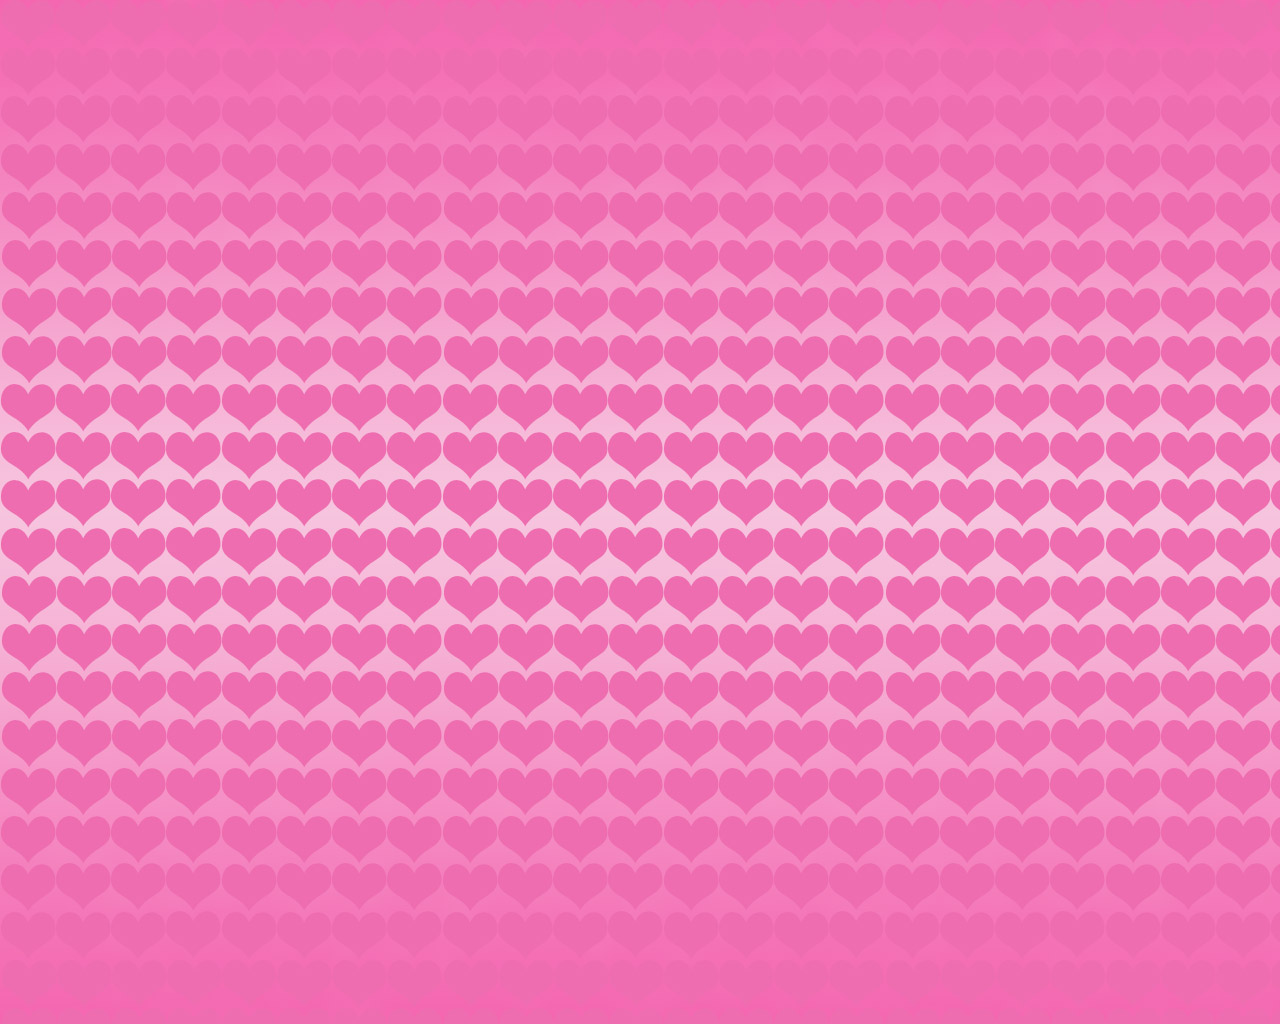 hp wallpaper pink - photo #19